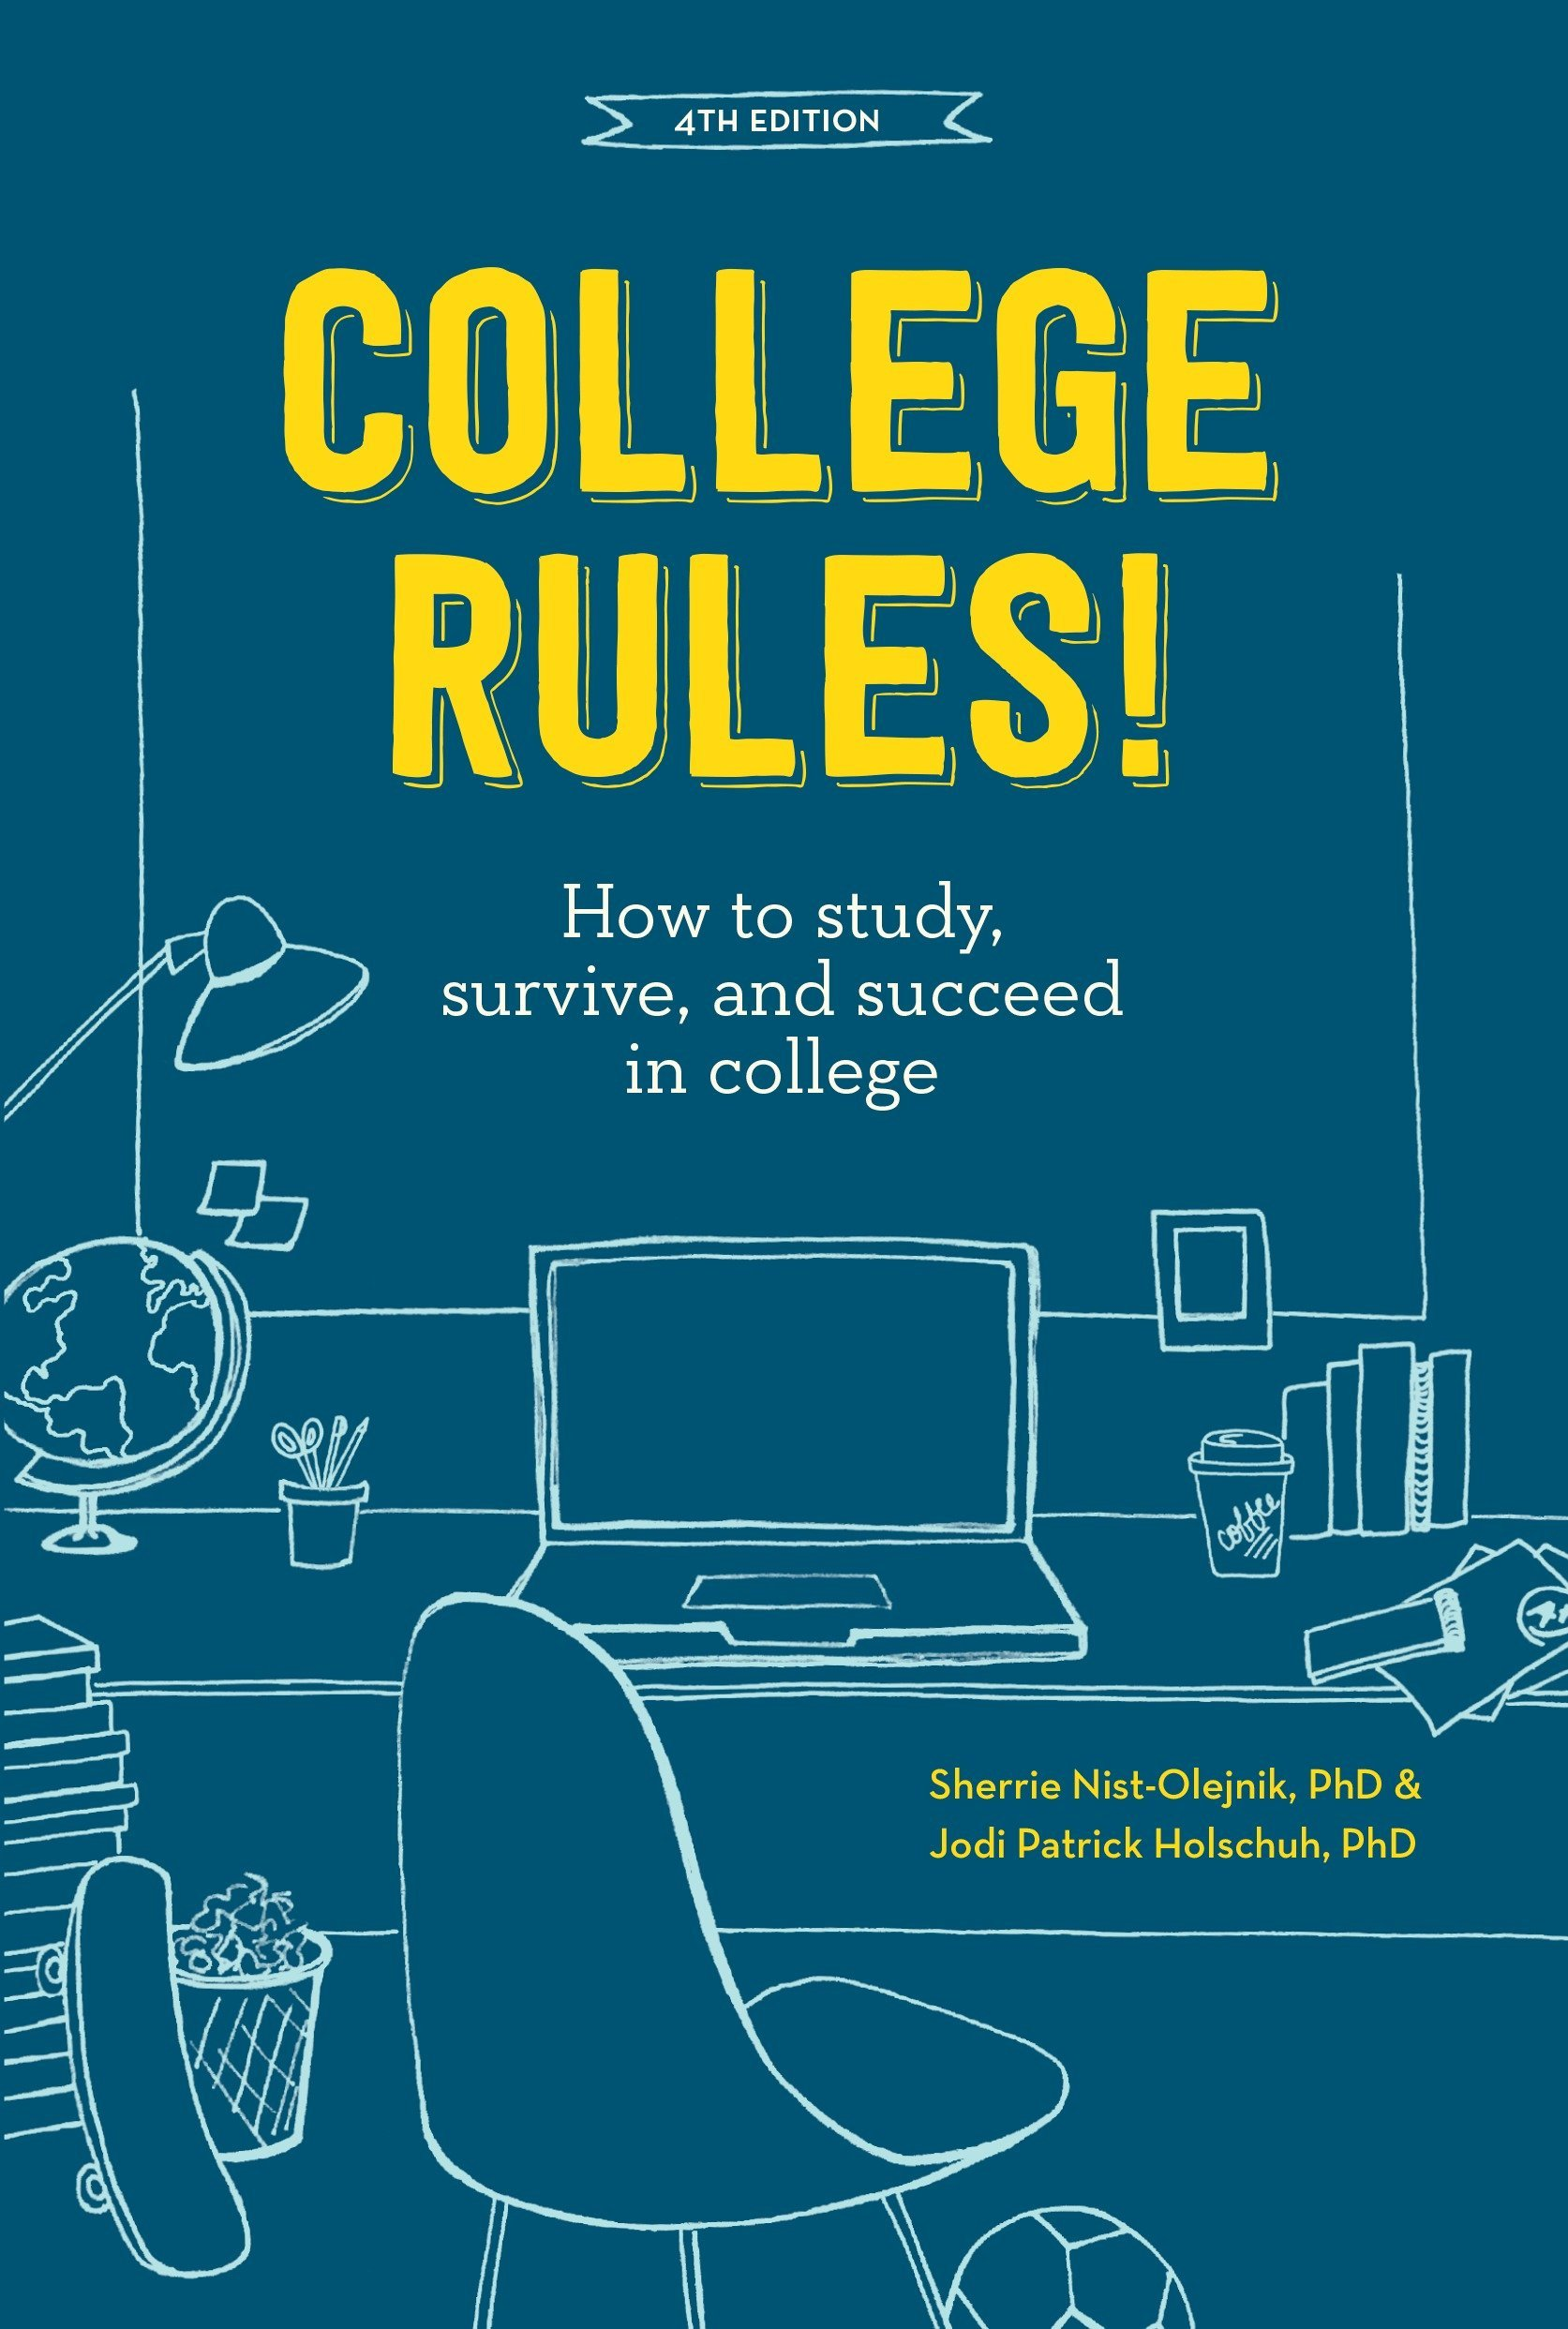 College Rules  4th Edition  How To Study Survive And Succeed In College